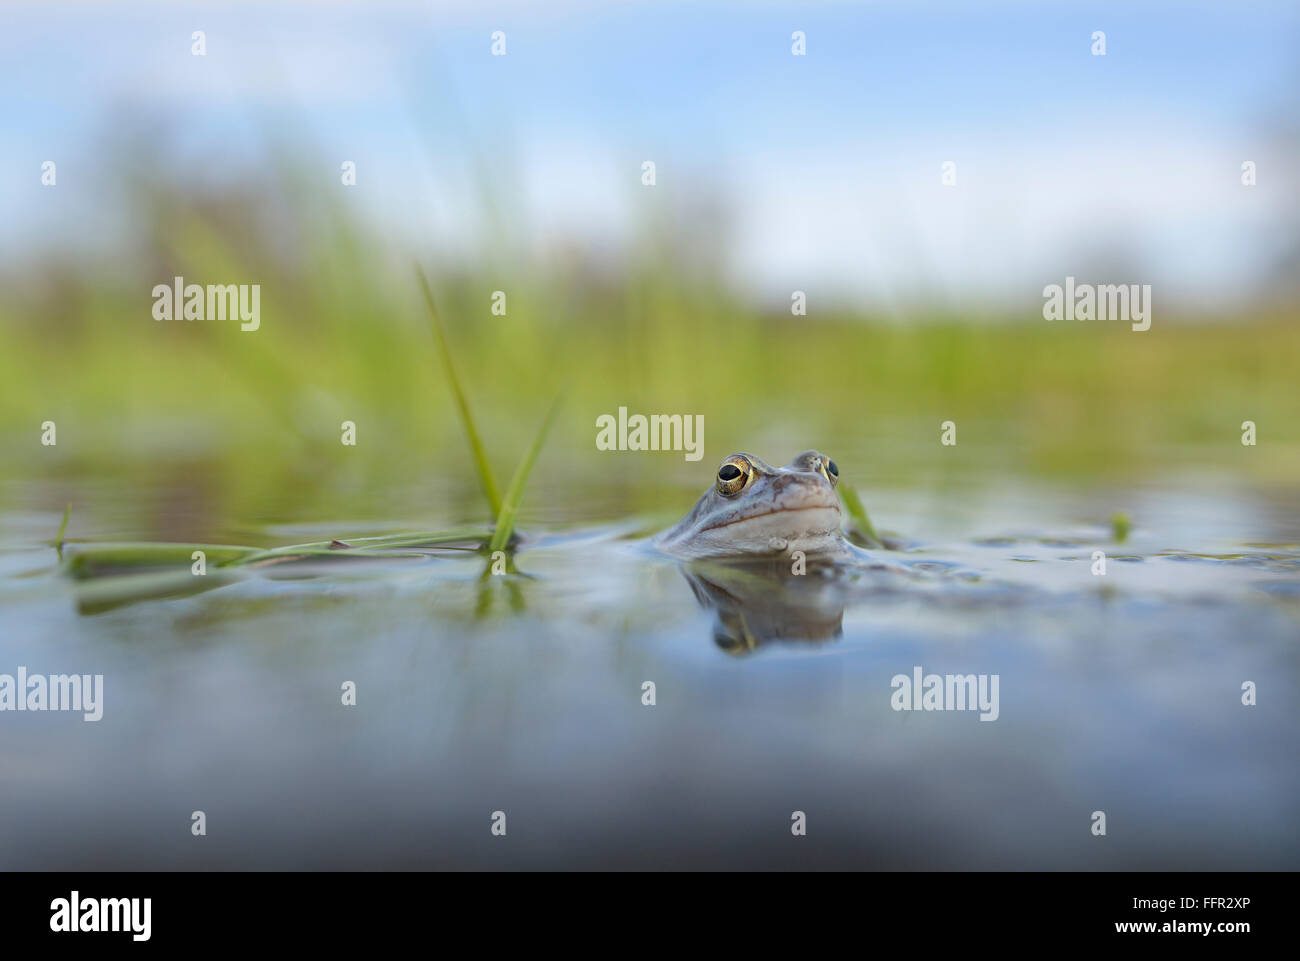 Moor frog (Rana arvalis), blue coloured male during mating season, in spawning waters, Elbe, Saxony-Anhalt, Germany - Stock Image